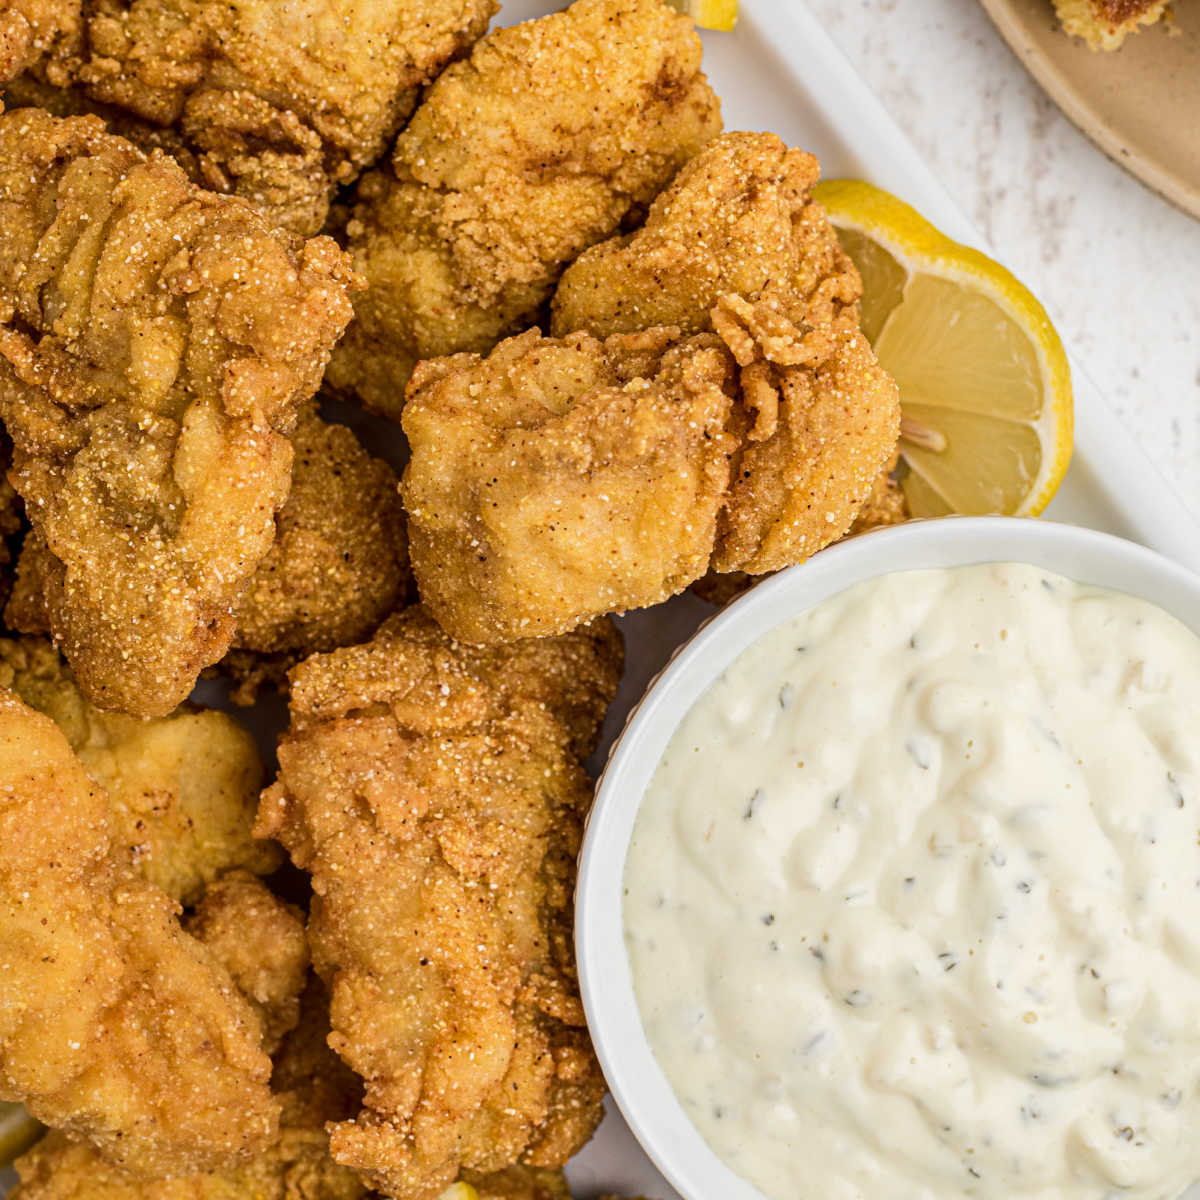 close up of some fried catfish nuggets with tartar sauce